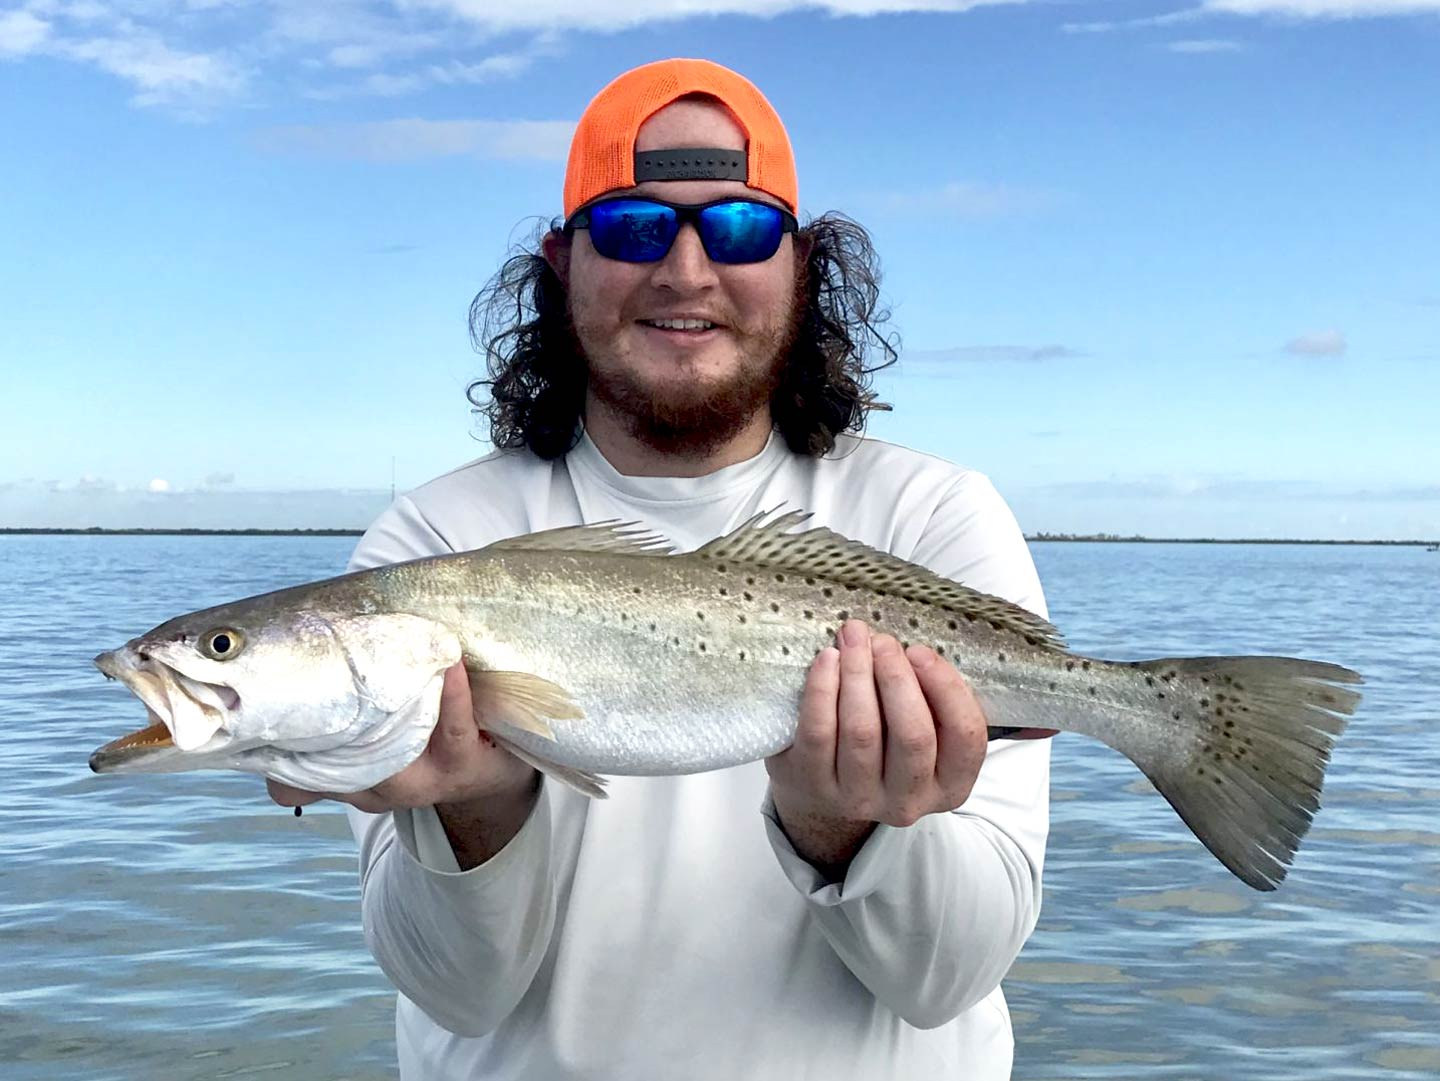 A man holding a Speckled Trout on a boat